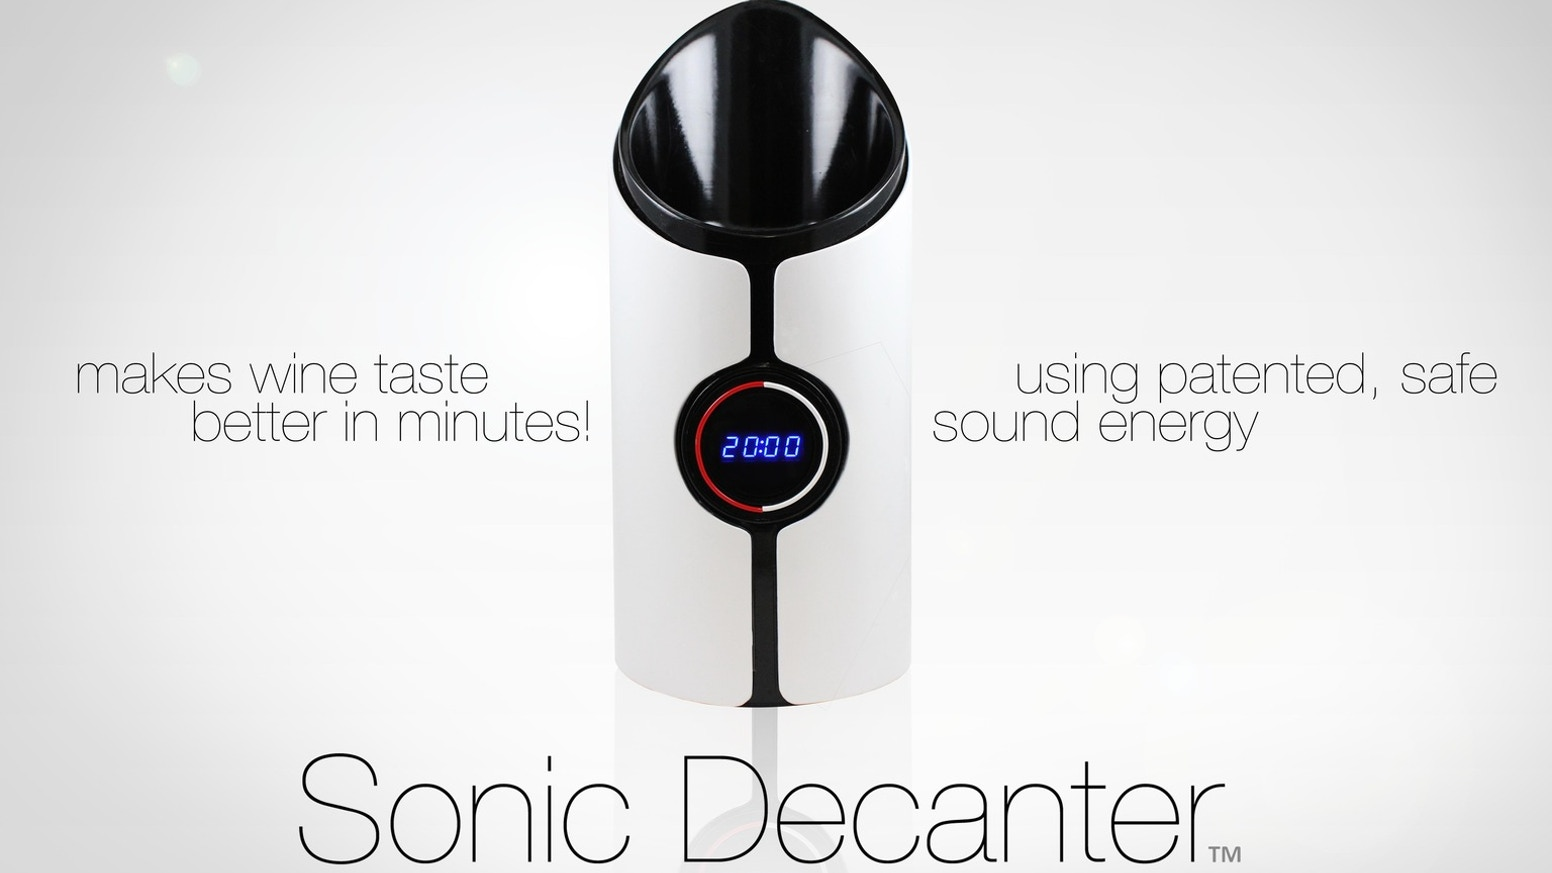 Sonic Decanter - Makes Every Wine Better! by Sonic Decanter ...